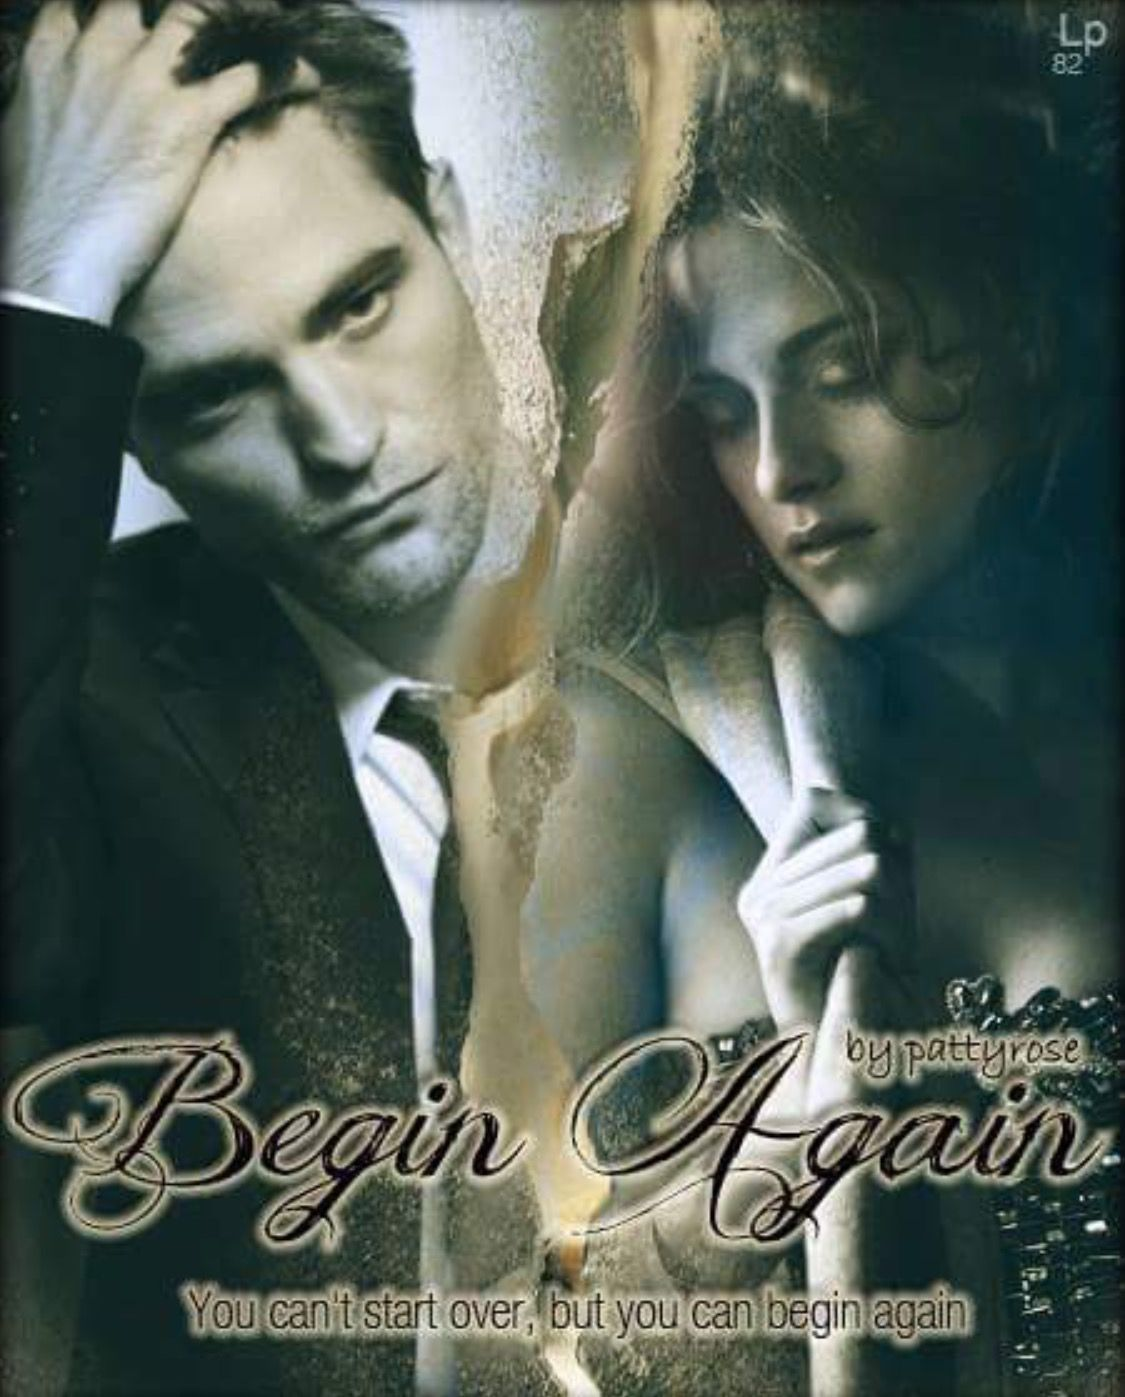 You Can T Always Start Over Life Gets Real And Memories Of First Love No Matter How Passionate It May H Begin Again Fan Fiction Stories The Age Of Innocence